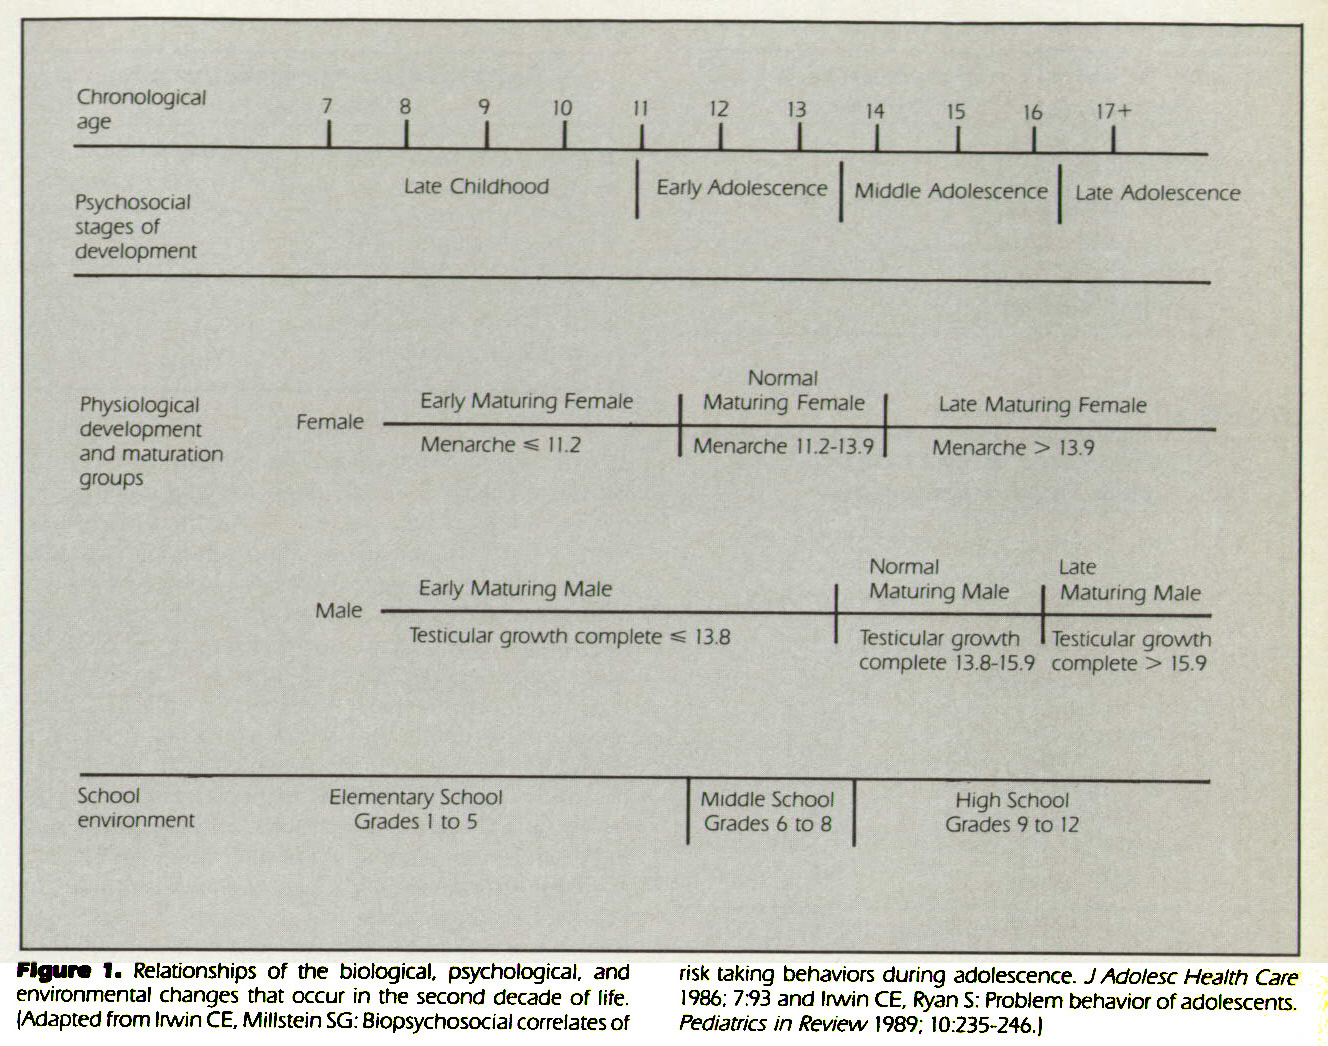 Figure 1. Relationships of the biological, psychological, and environmental changes that occur in the second decade of life. (Adapted from Irwin CE, Millstein SG: Biopsychosocial correlates of risk taking behaviors during adolescence. J Adolesc Health Care 1986; 7:93 and Irwin CE, Ryan S: Problem behavior of adolescents. Pediatrics in Review 1989; 10:235-246.)